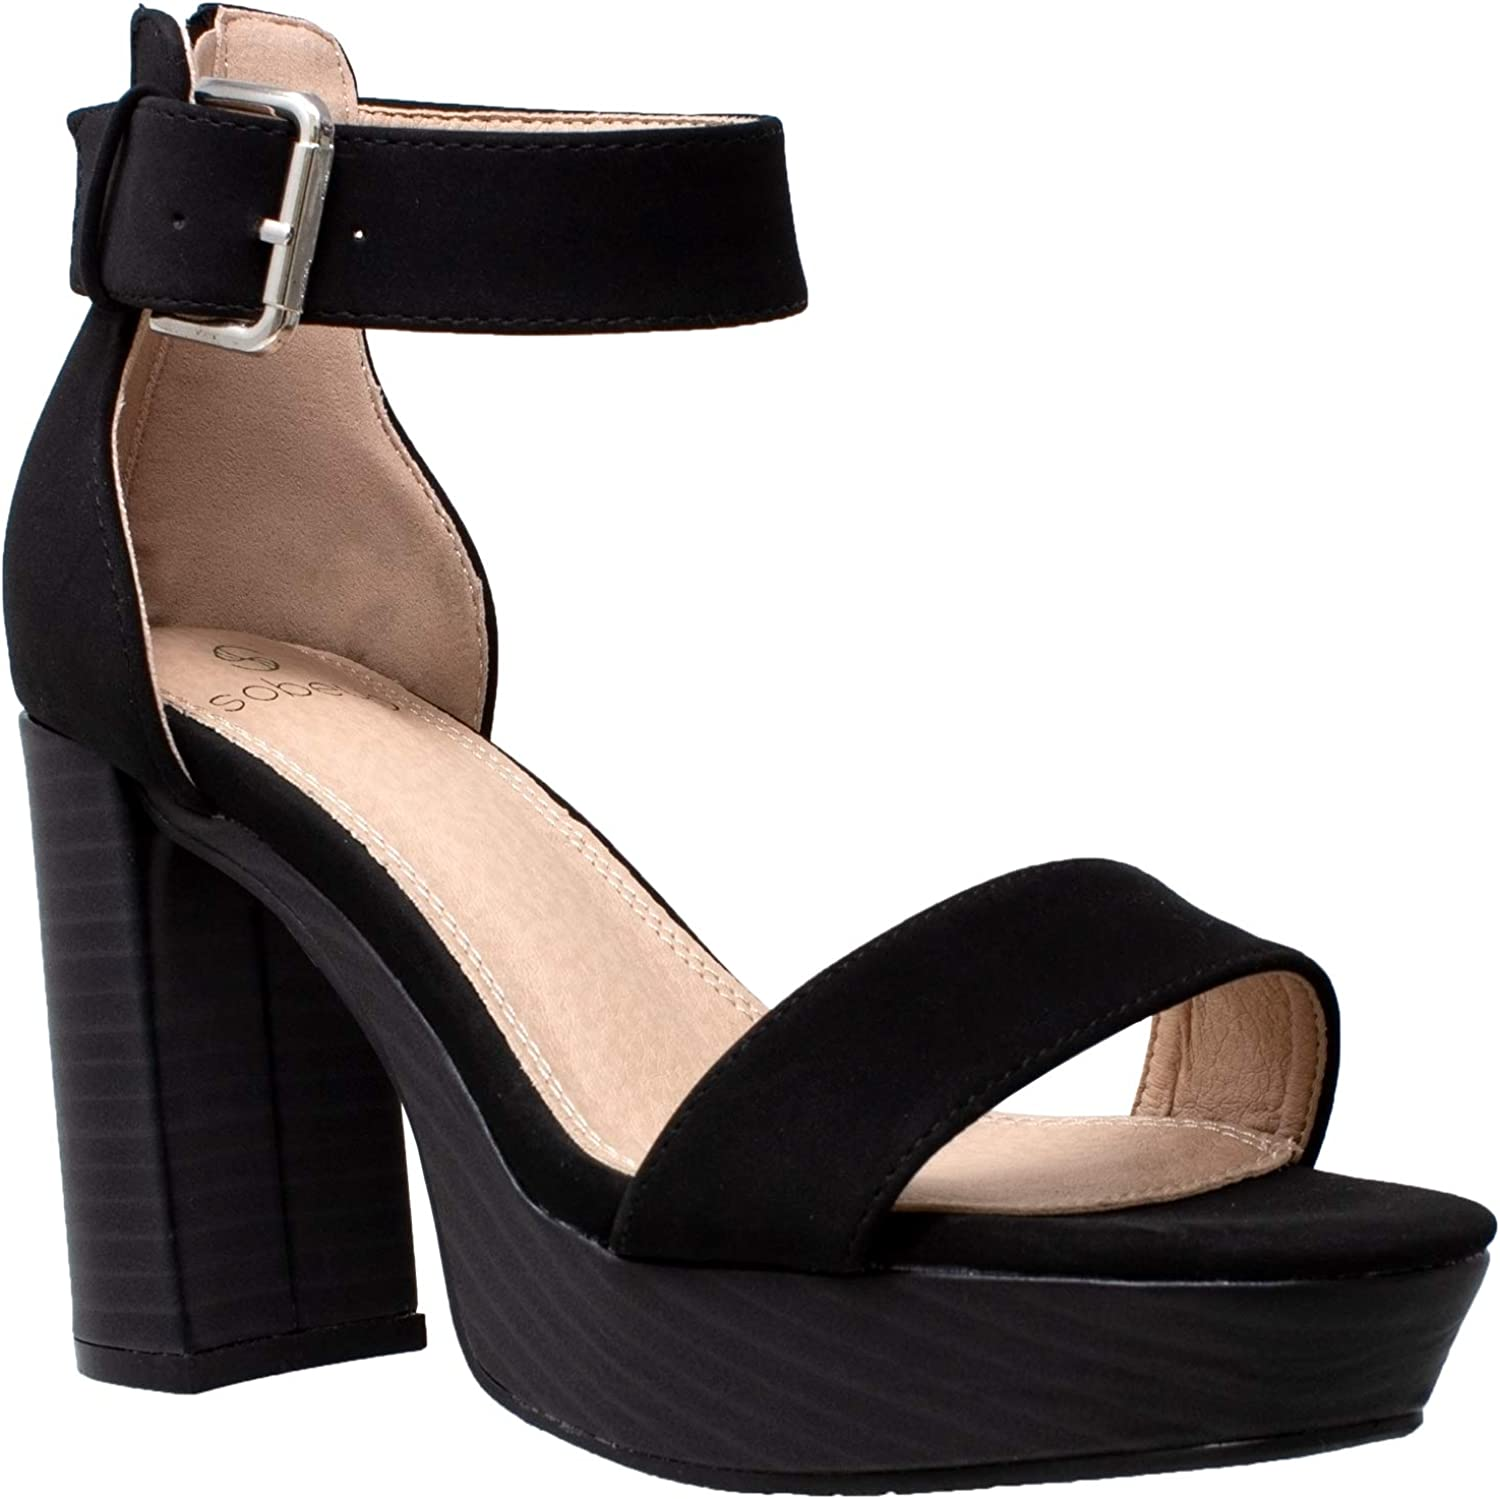 SOBEYO Women's Platform Sandals Ankle Many popular brands High Strap Chunky Outstanding Block He